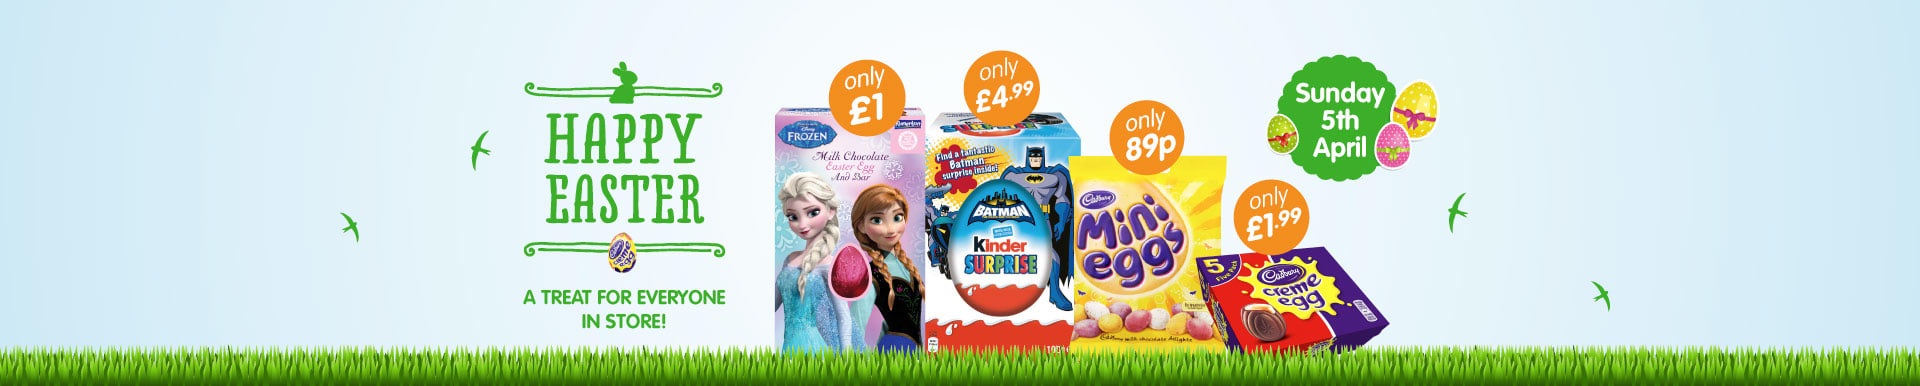 A treat for everyone in store for Easter. From Cadburys Easter Eggs to Frozen chocolate treats.